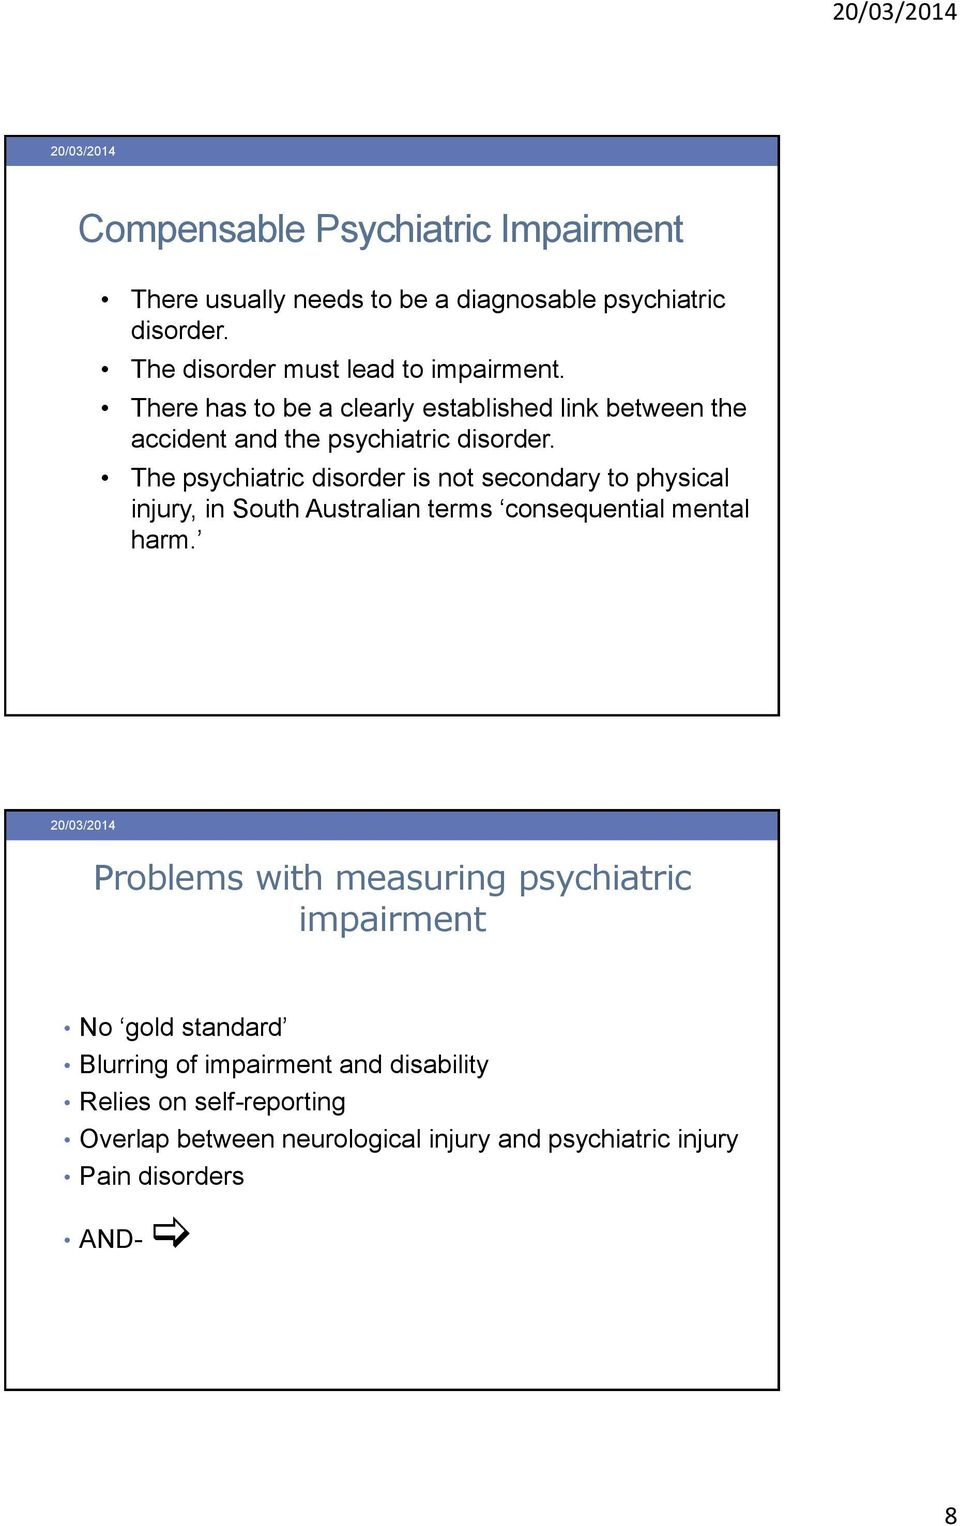 Psychosexual disorder va rating